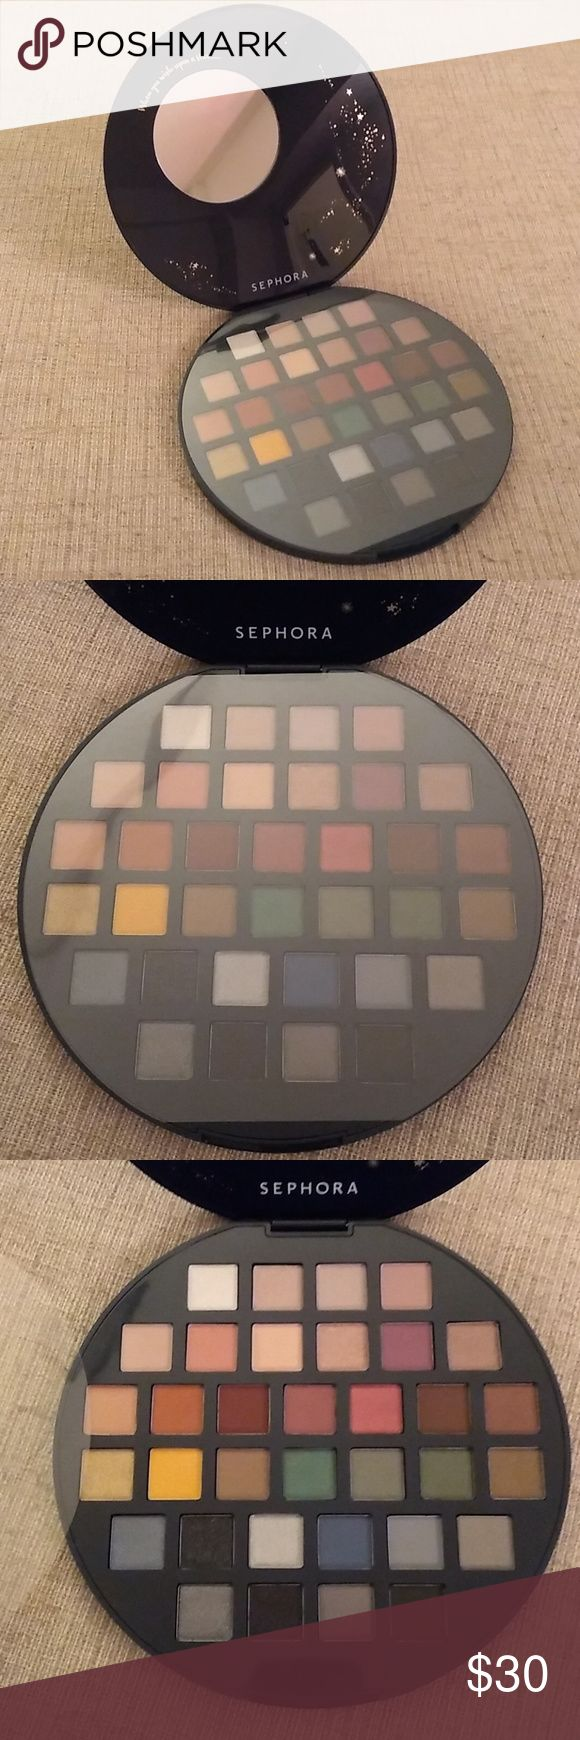 Sephora Star Catcher Palette New without box. Never used